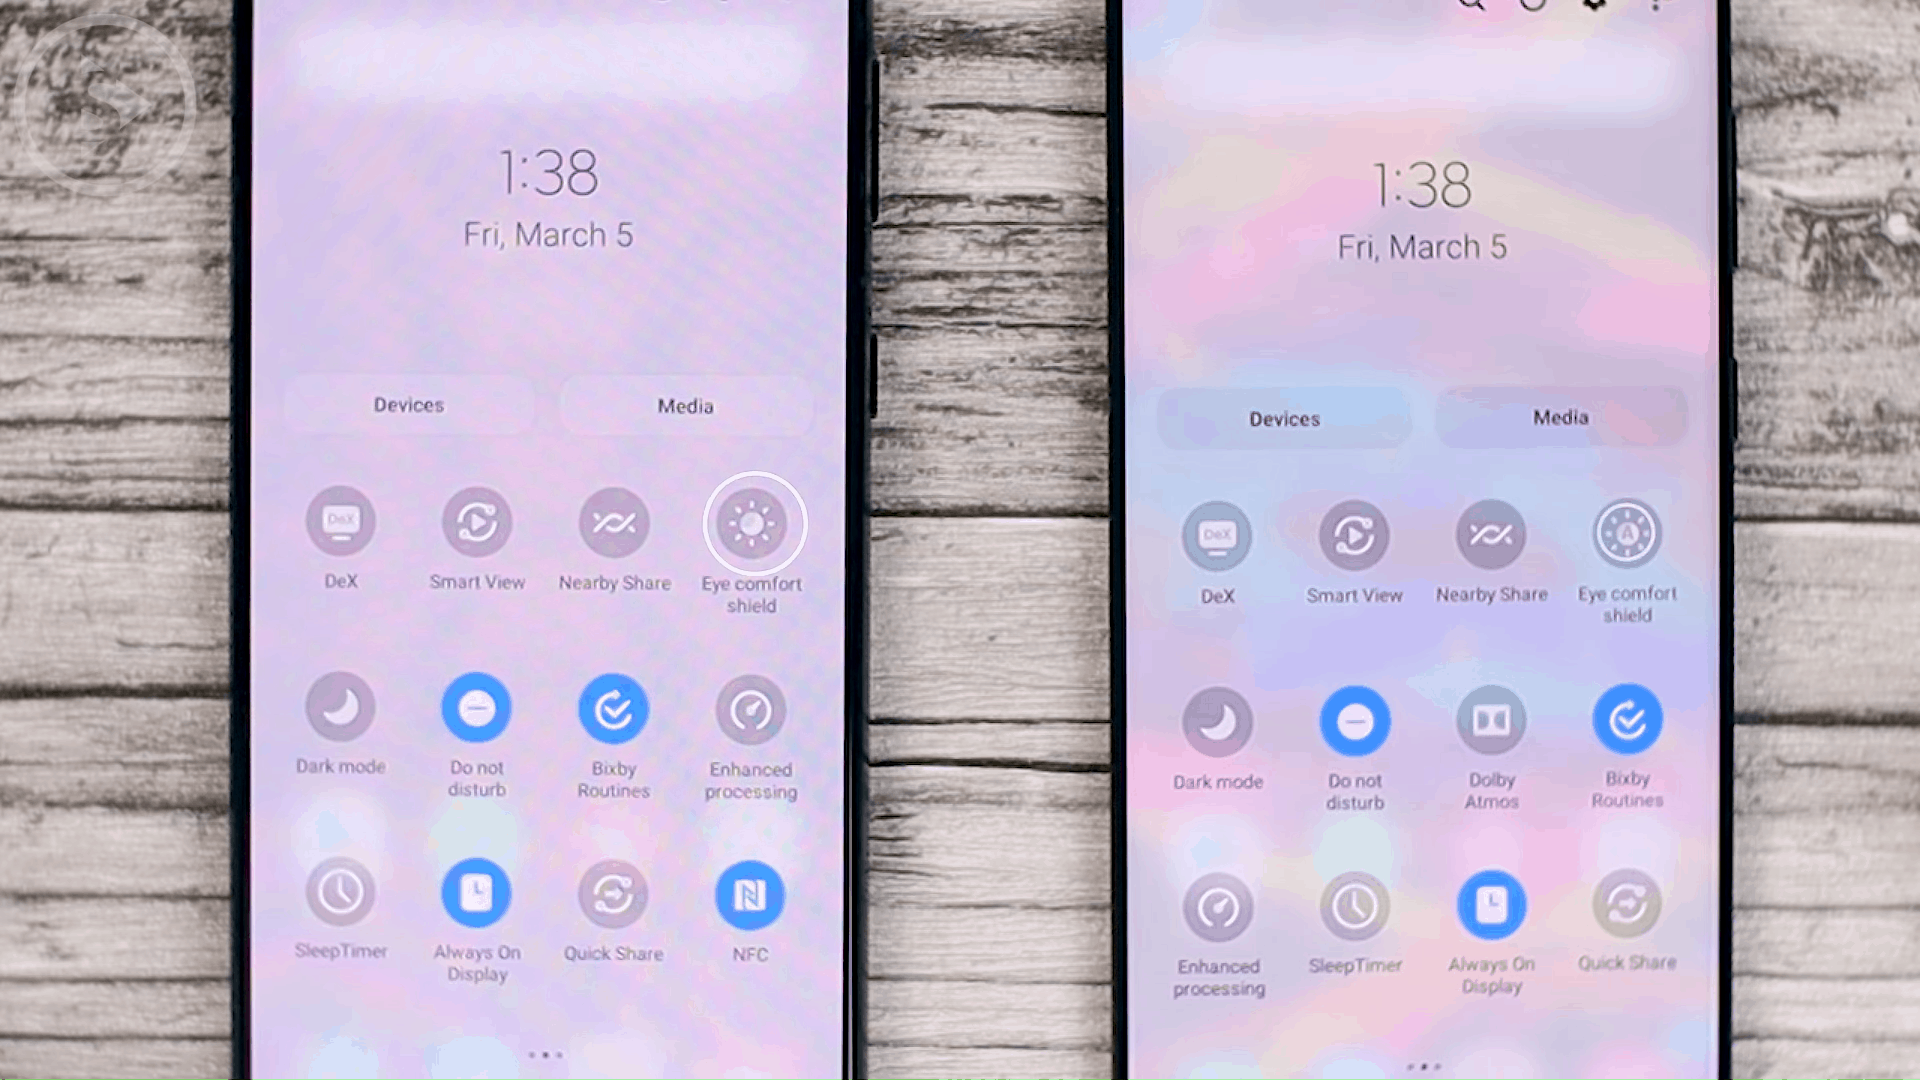 New Name for Blue Light Filter - One UI 3.1 Features on Samsung S20, S20+, S20 Ultra